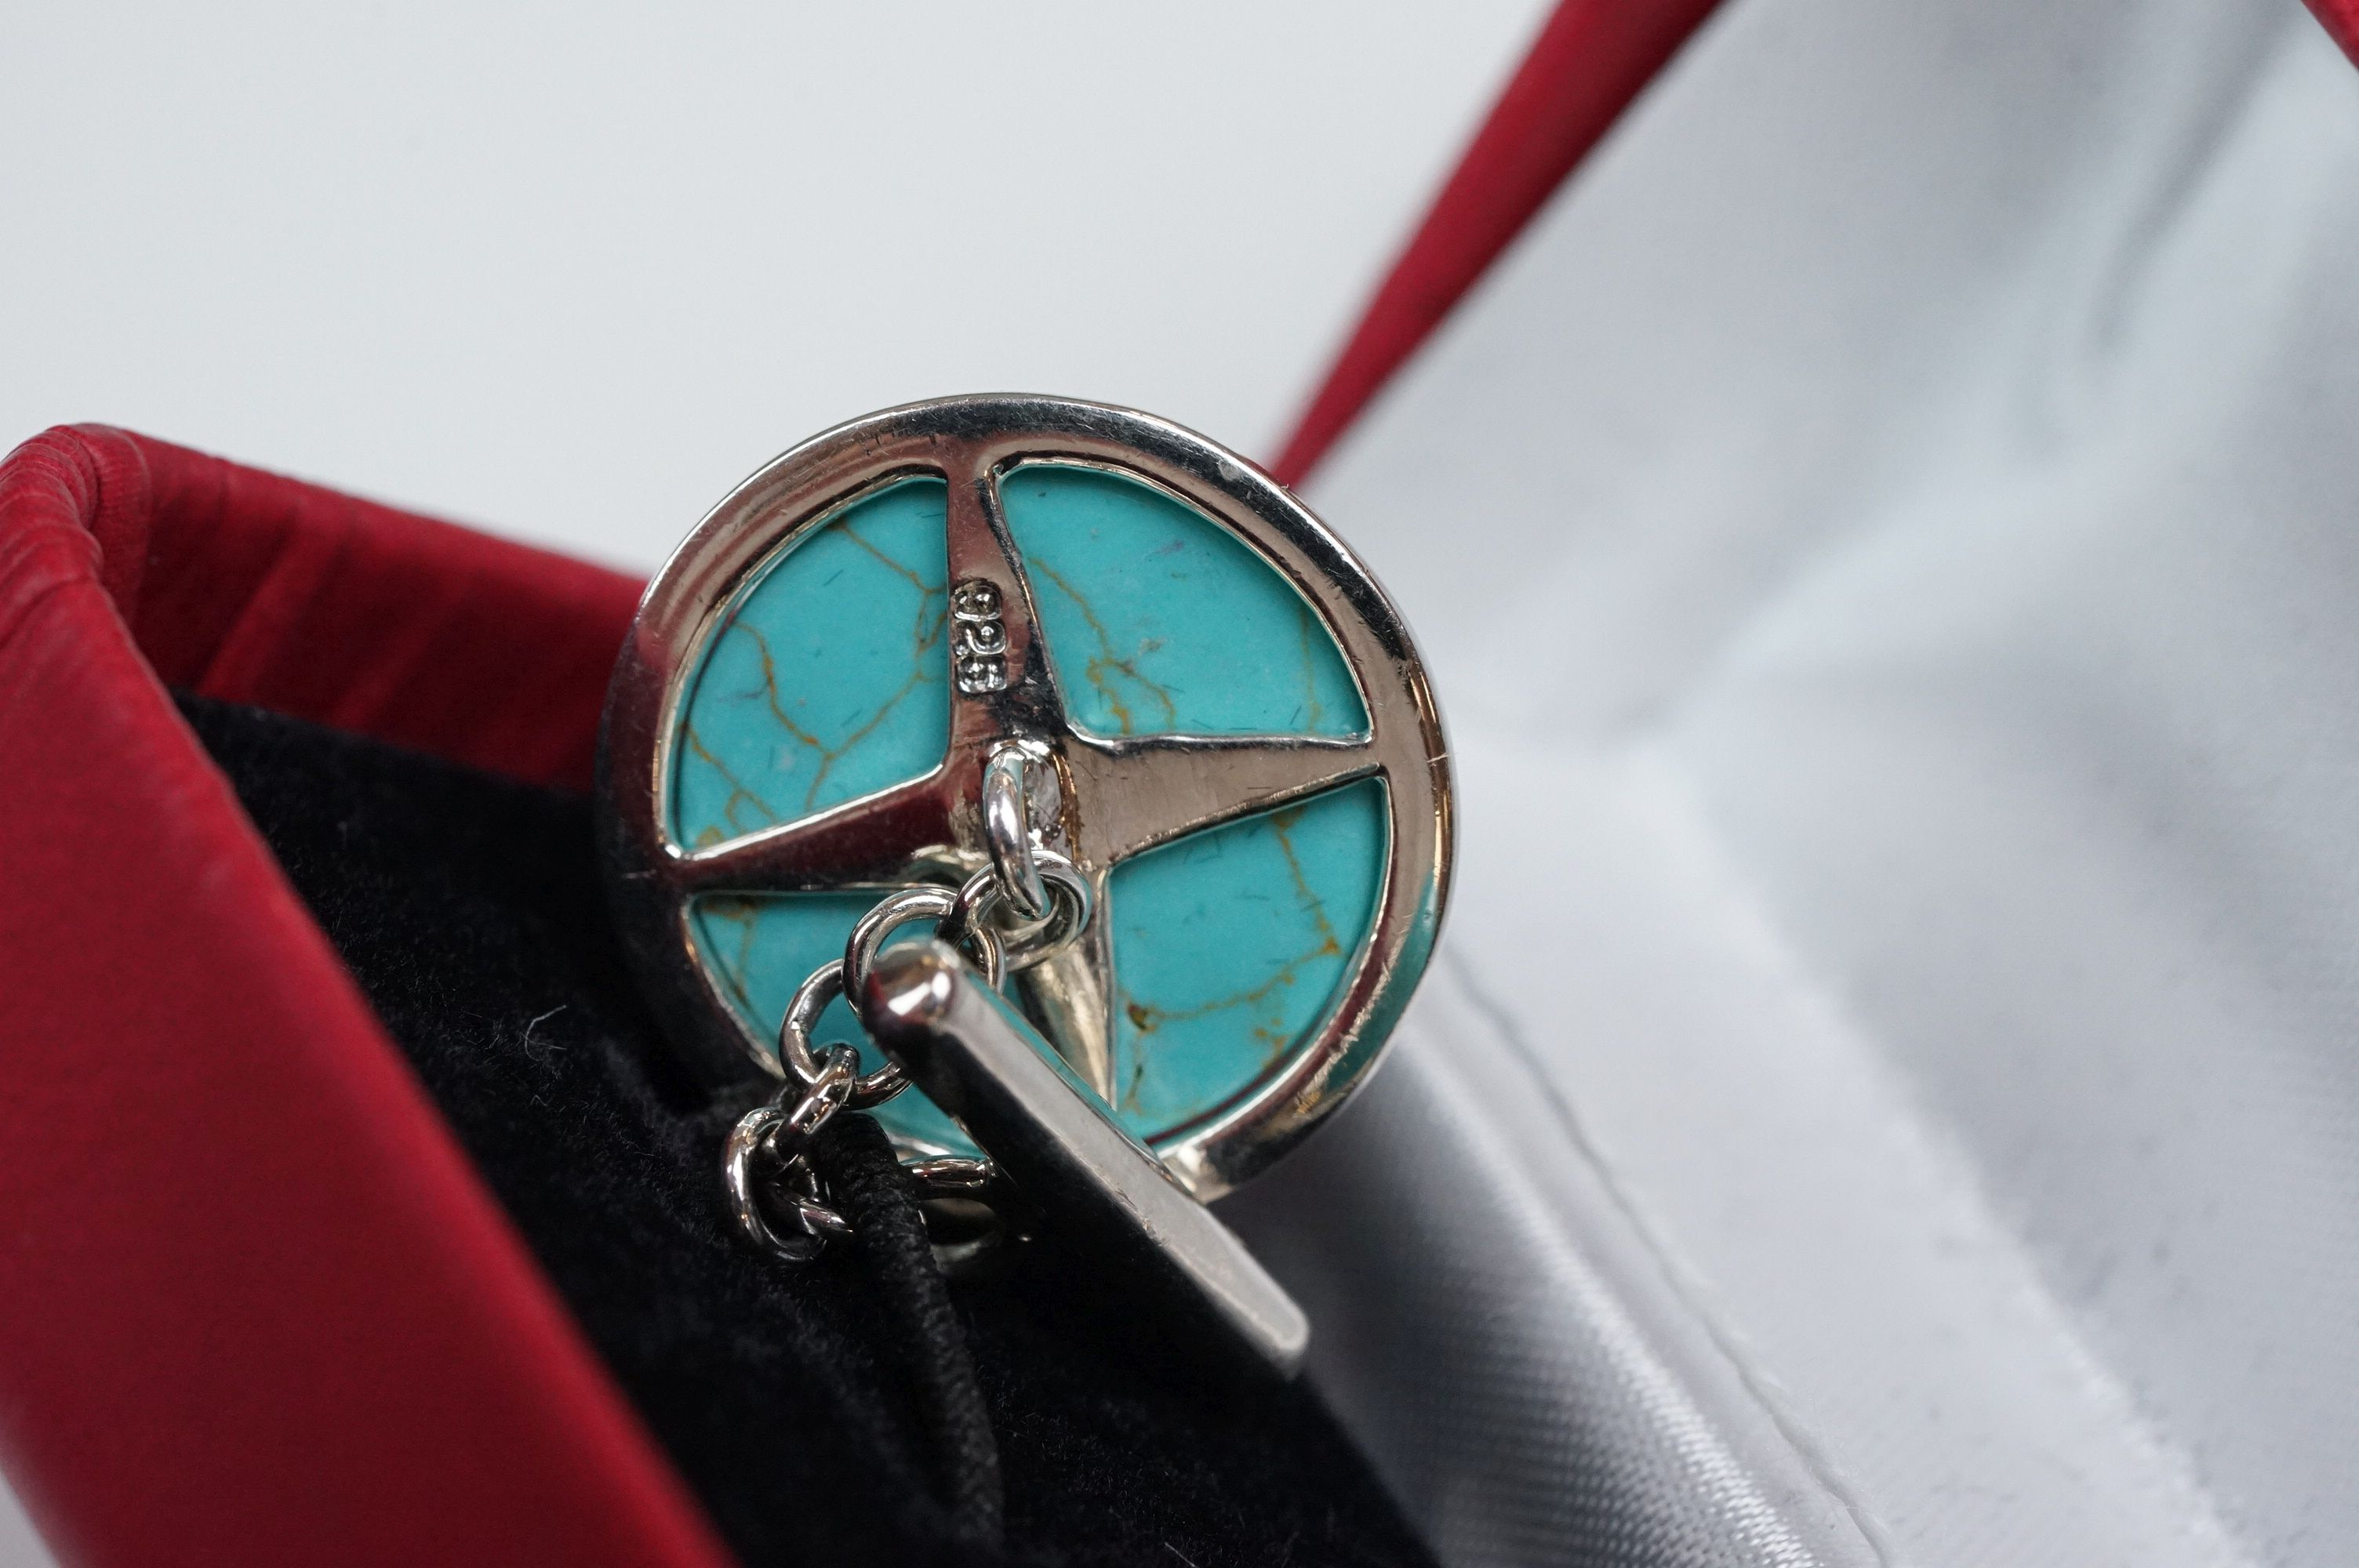 Pair of silver and turquoise set cufflinks, stamped 925 - Image 4 of 5